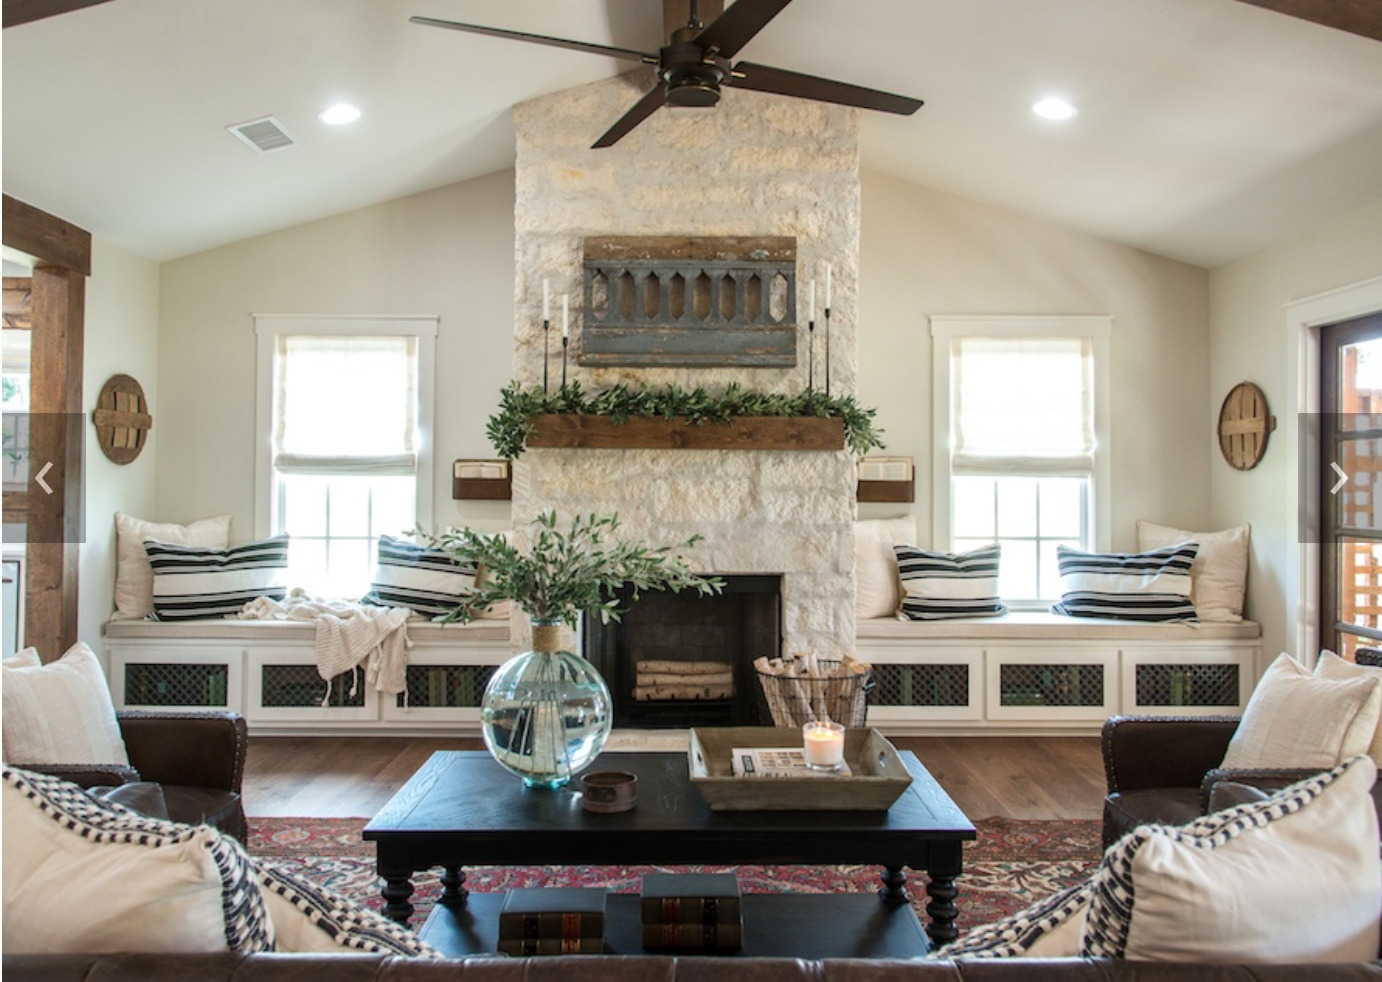 Hgtv Fixer Upper Season 4 Episode 4 Fireplaces